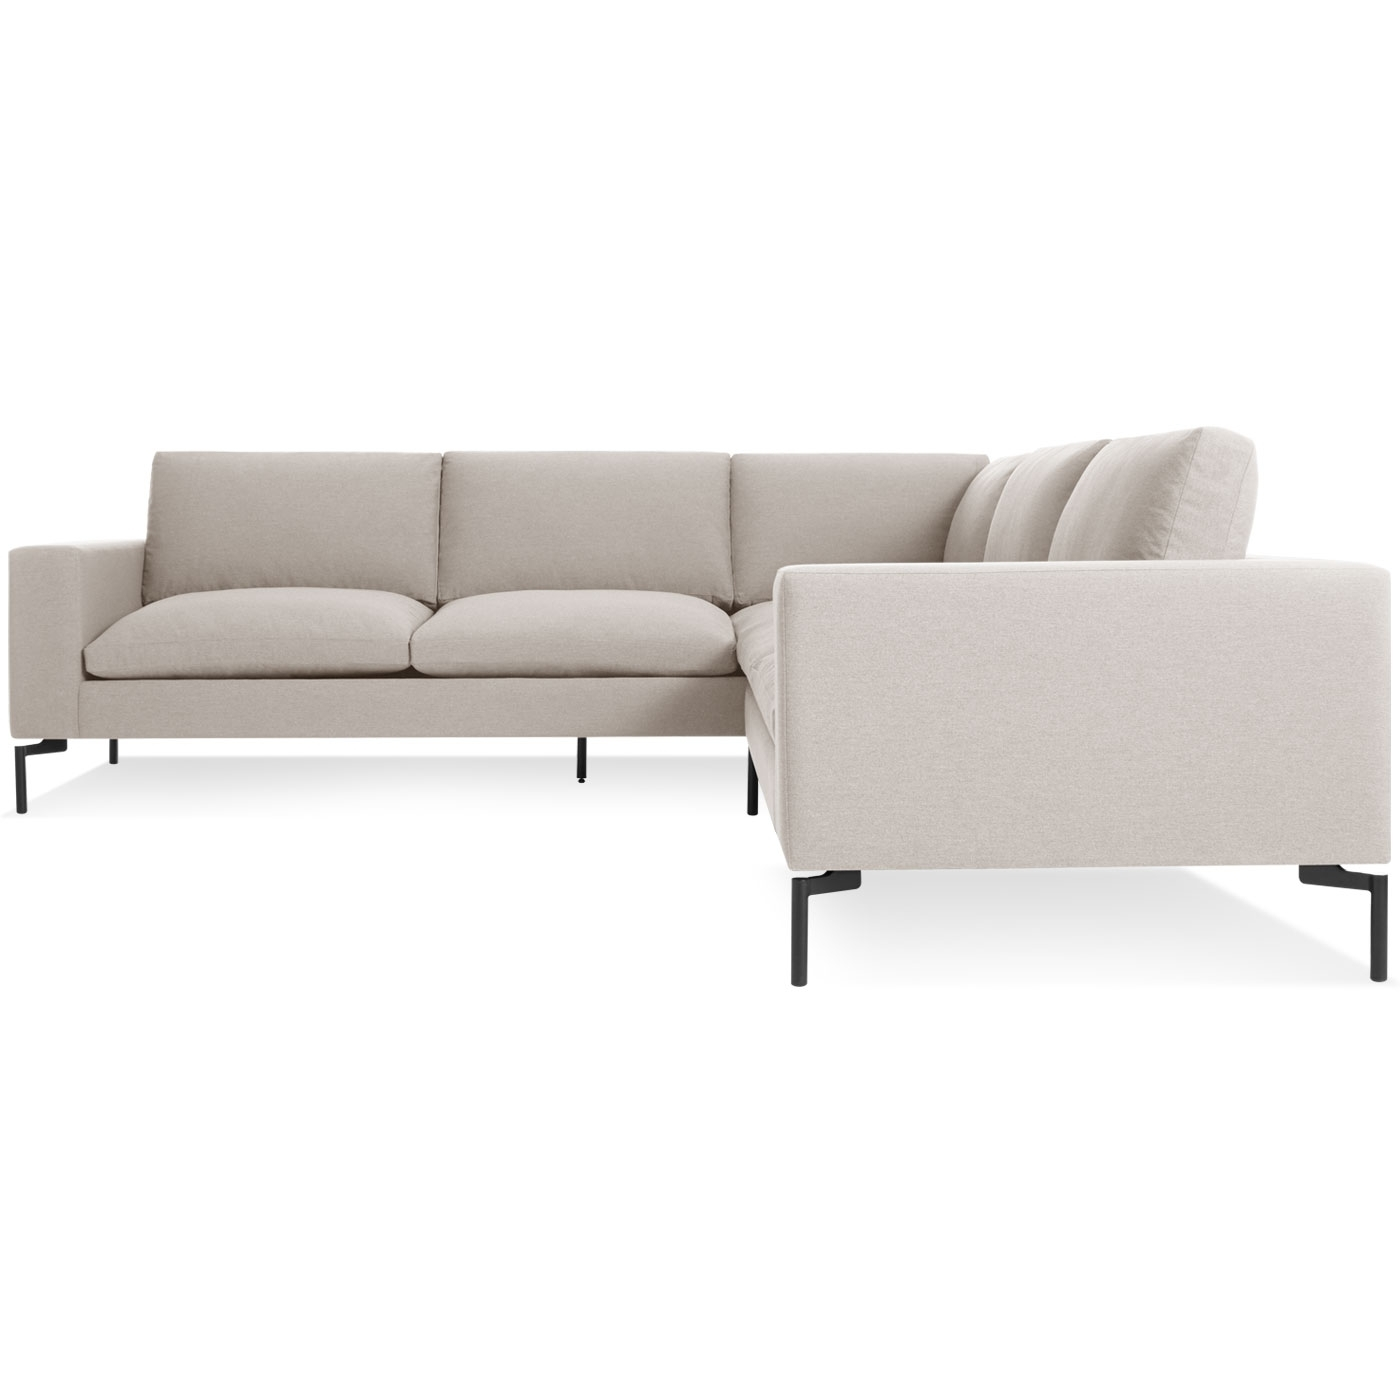 New Standard Small Sectional Sofa – Modern Sofas | Blu Dot Throughout Small Sectional Sofas (View 2 of 10)